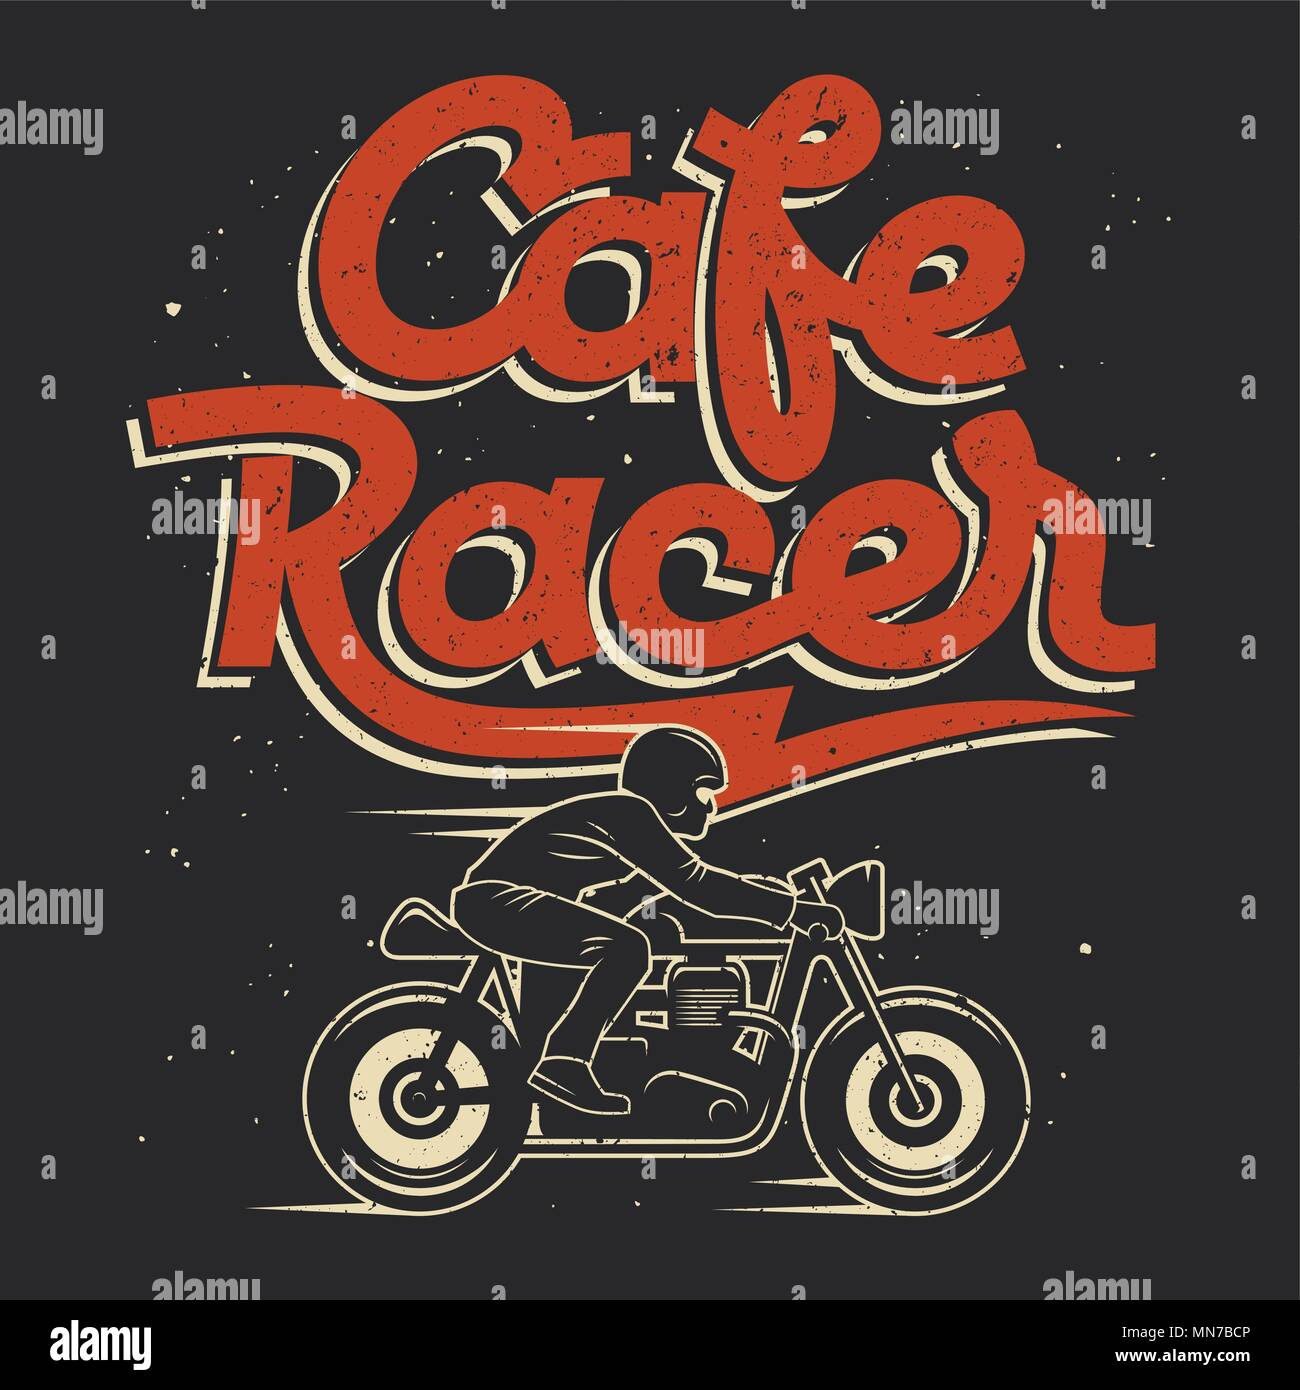 Motorcycle Rider and hand-made lettering / Cafe Racer T